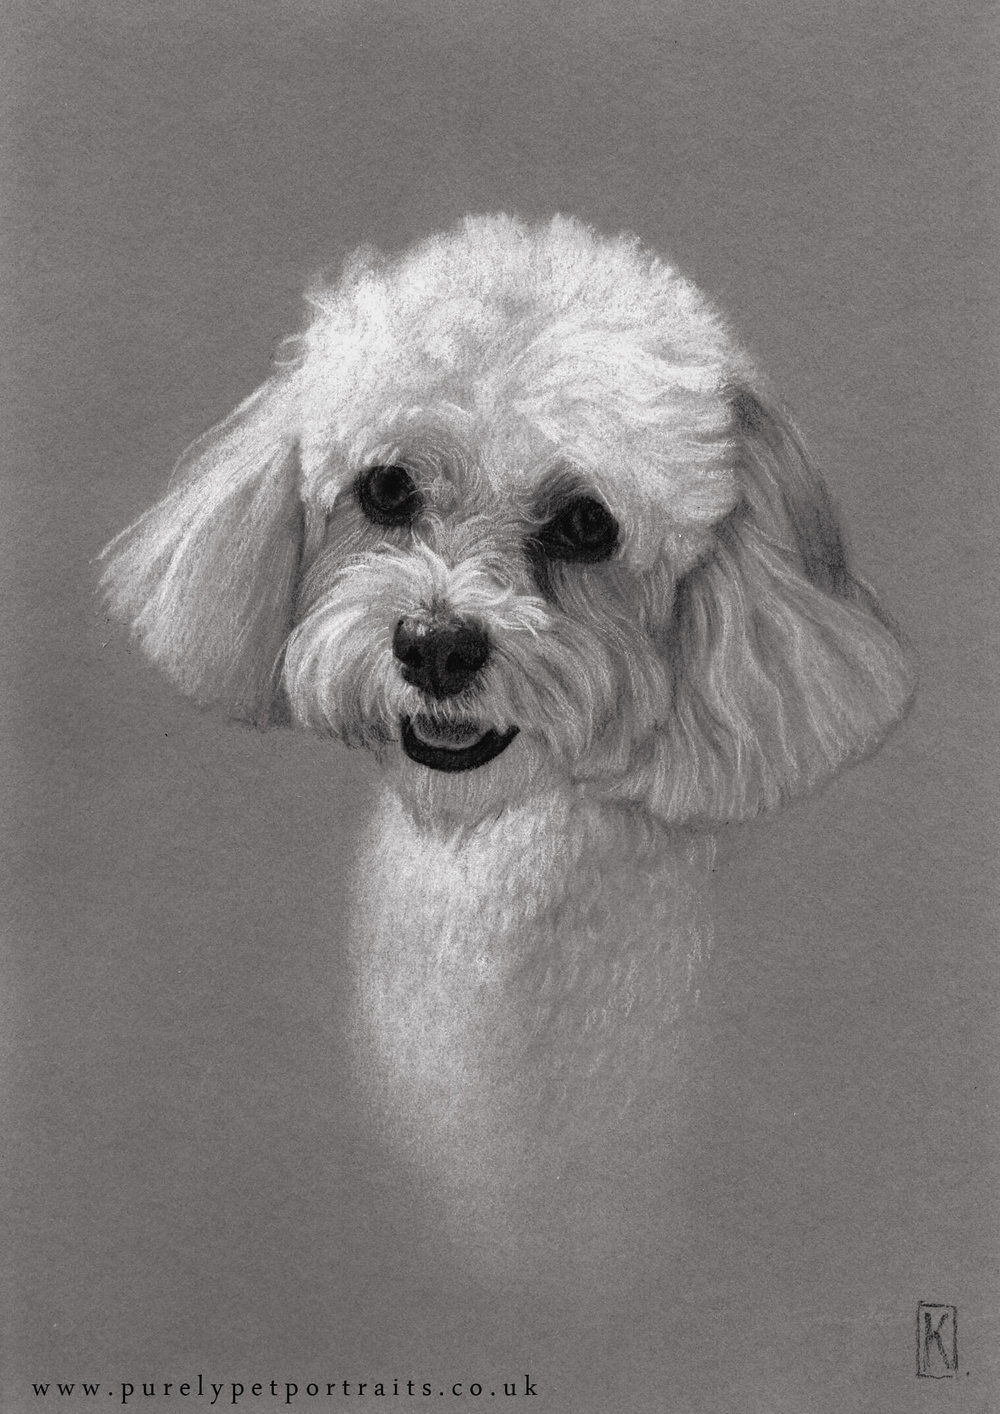 Portrait of Cookie by www.purelypetportraits.co.uk